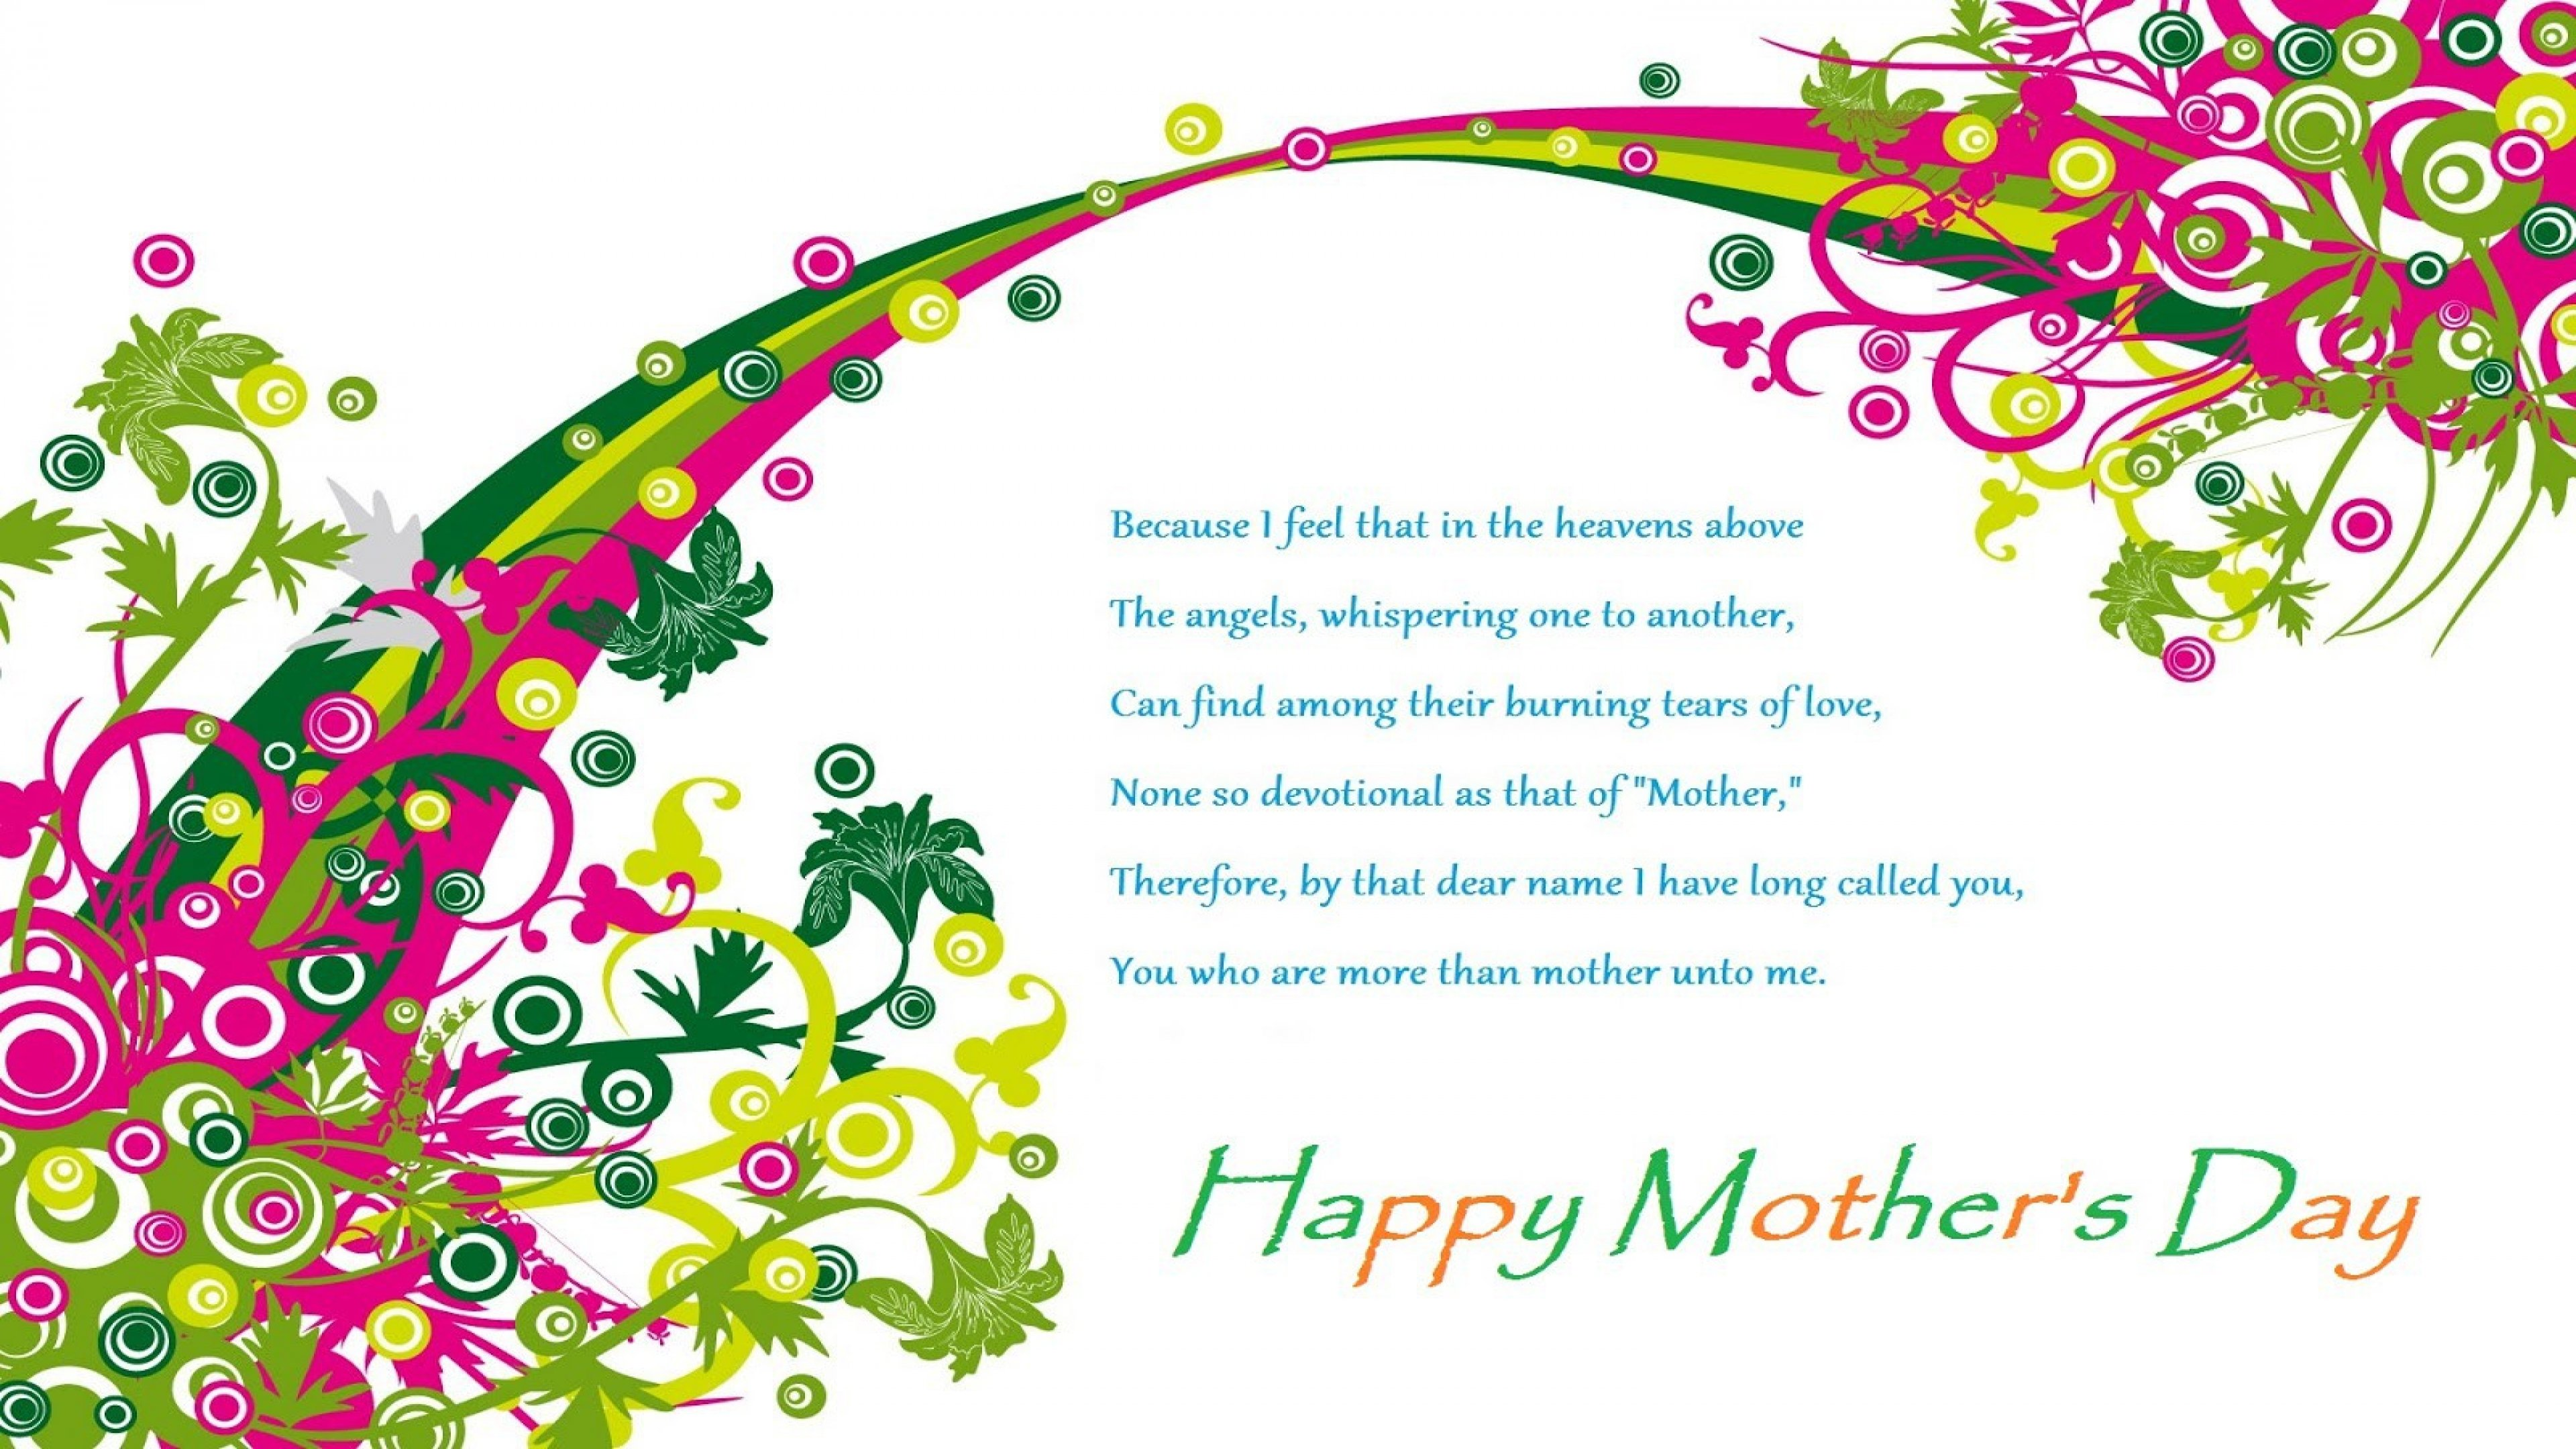 Happy Mother's Day Poem Greetings Image Wallpaper